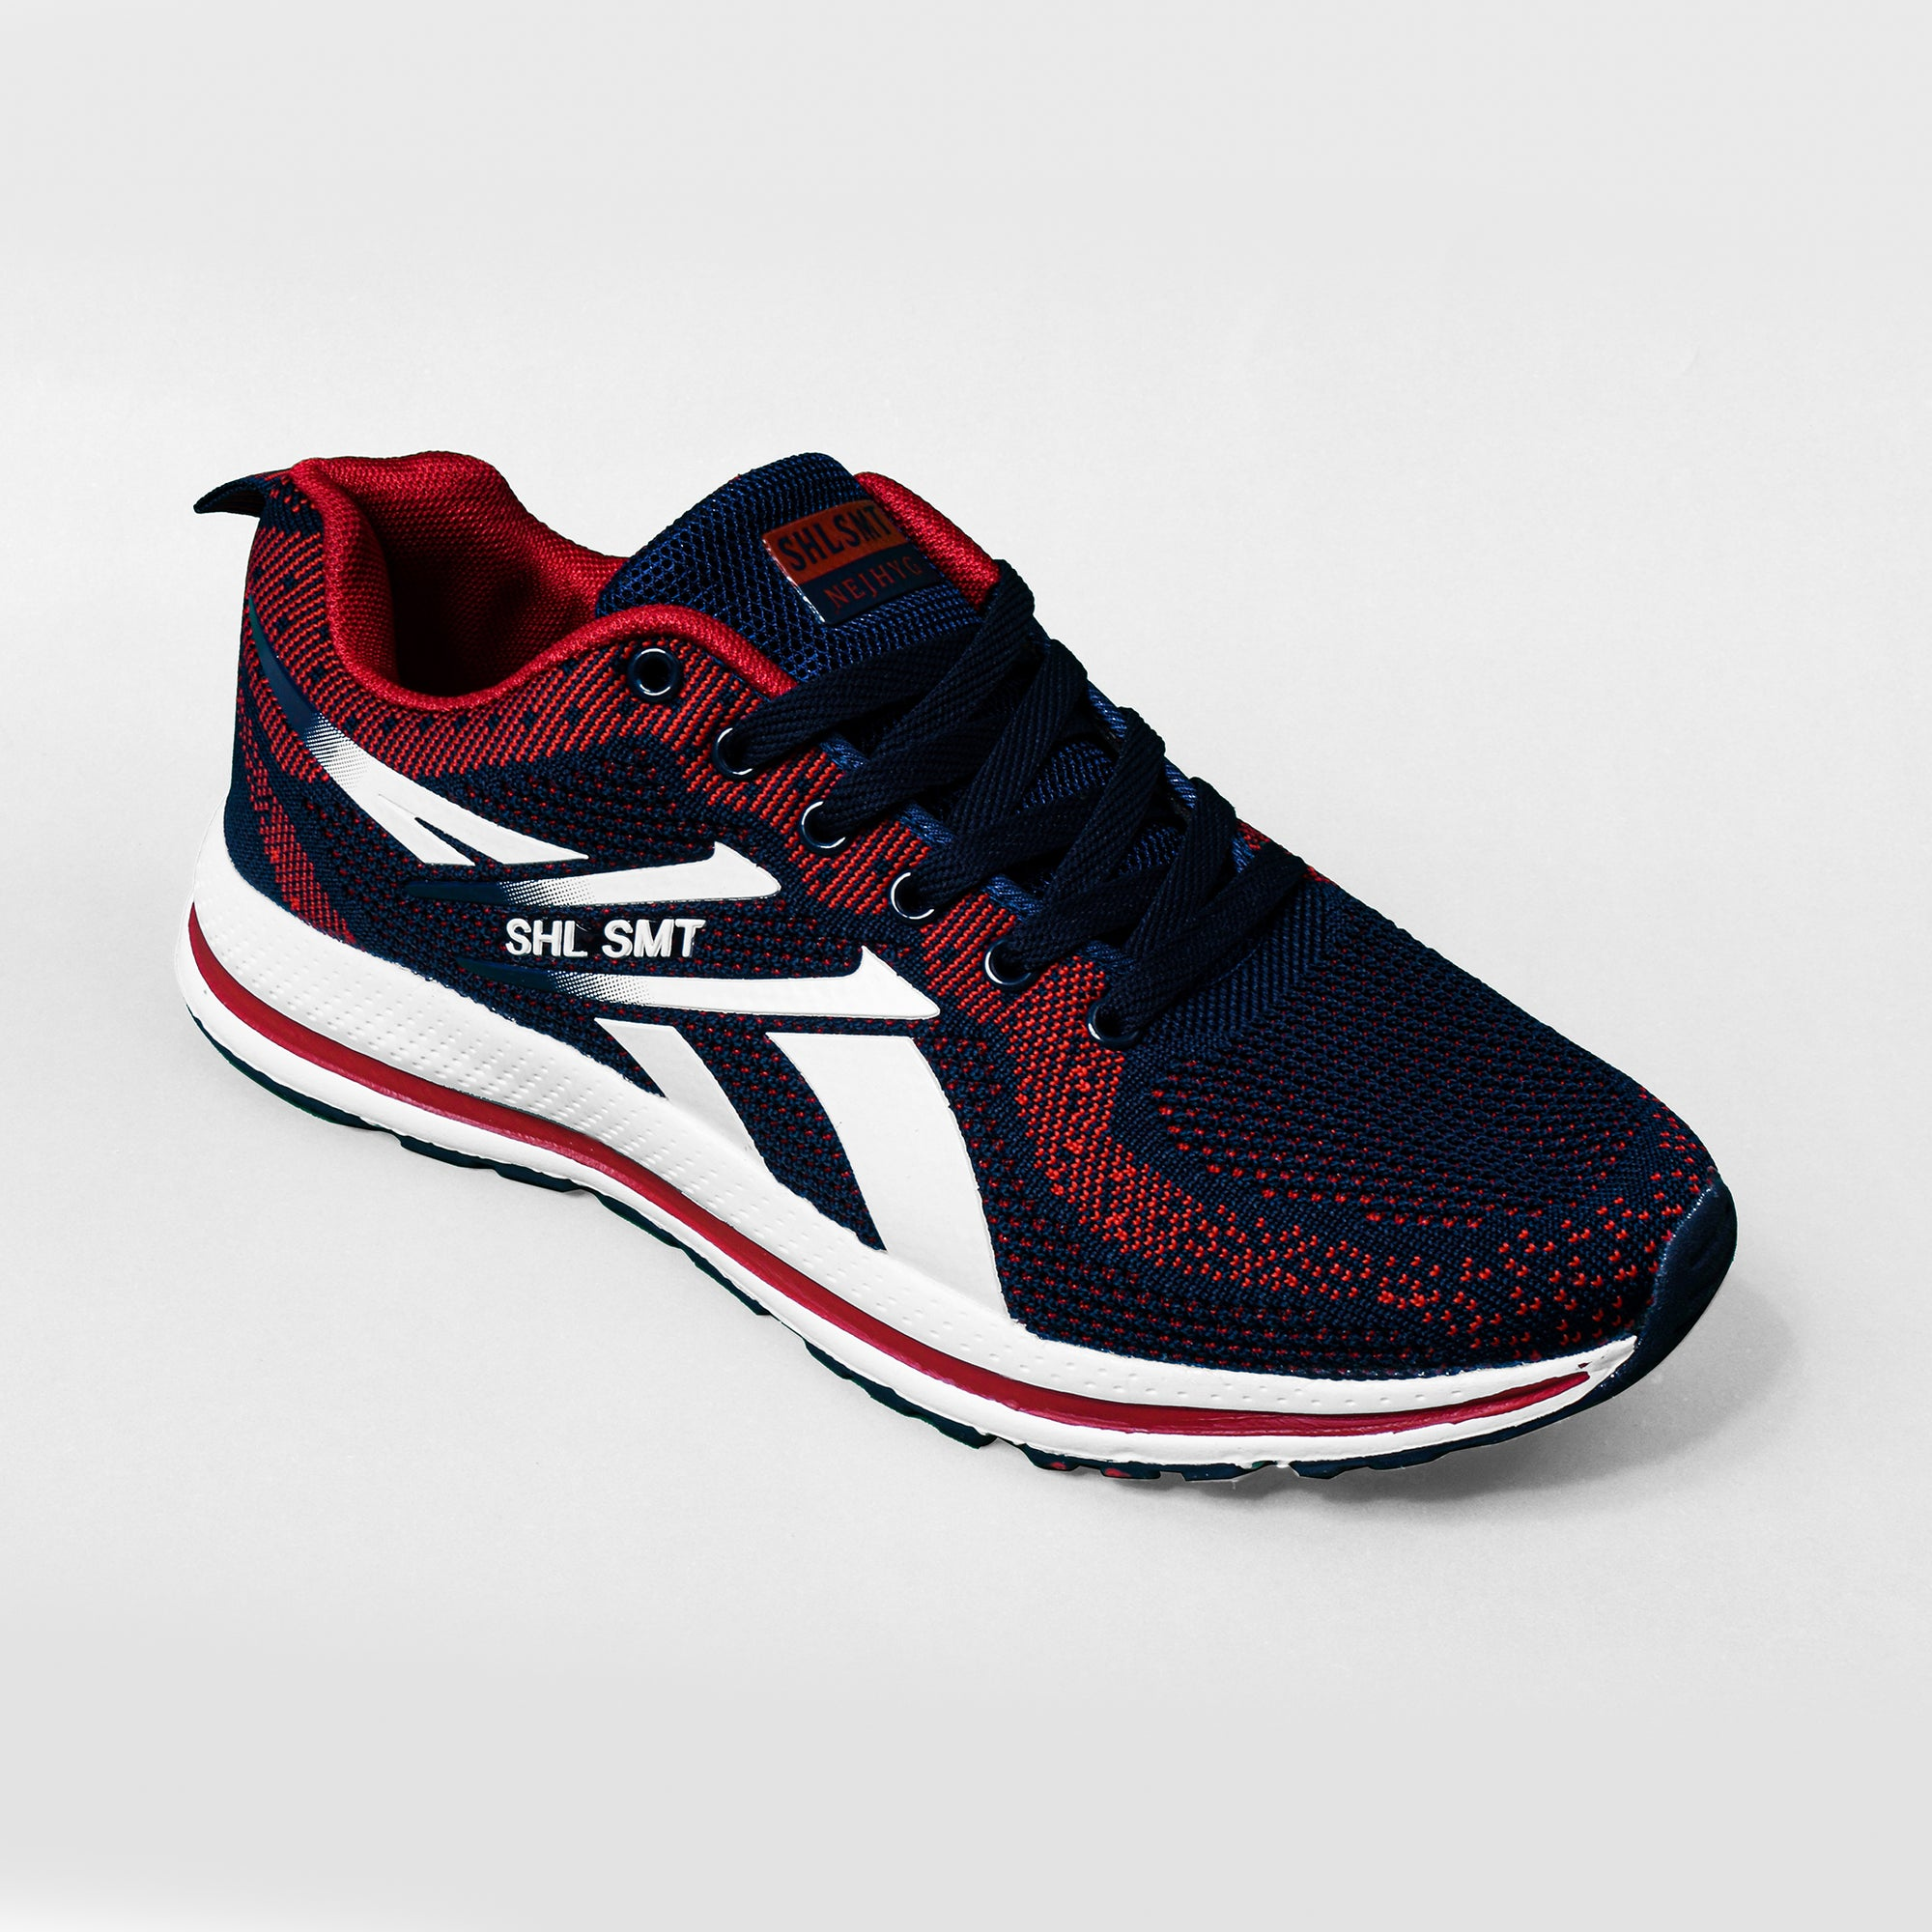 Classic Stylish Sports Lace Up Shoes For Men-Navy & Red-NA10840